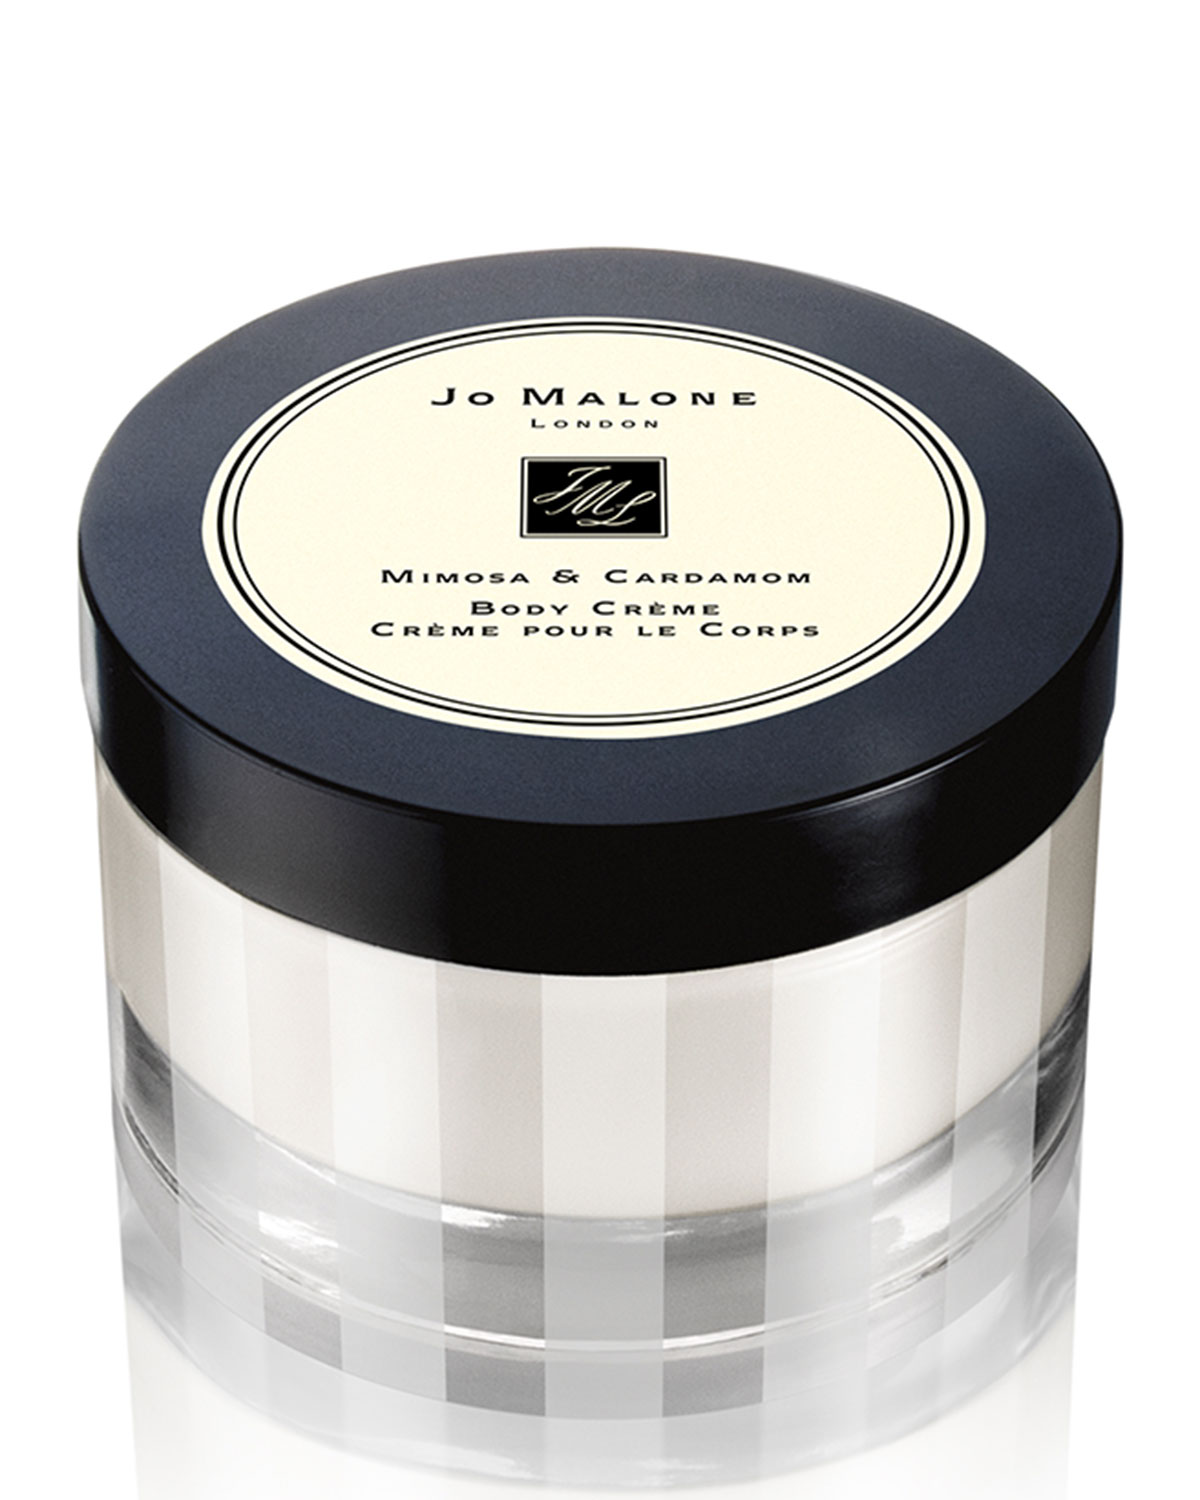 Jo Malone London 5.9 oz. Mimosa & Cardamom Body Creme